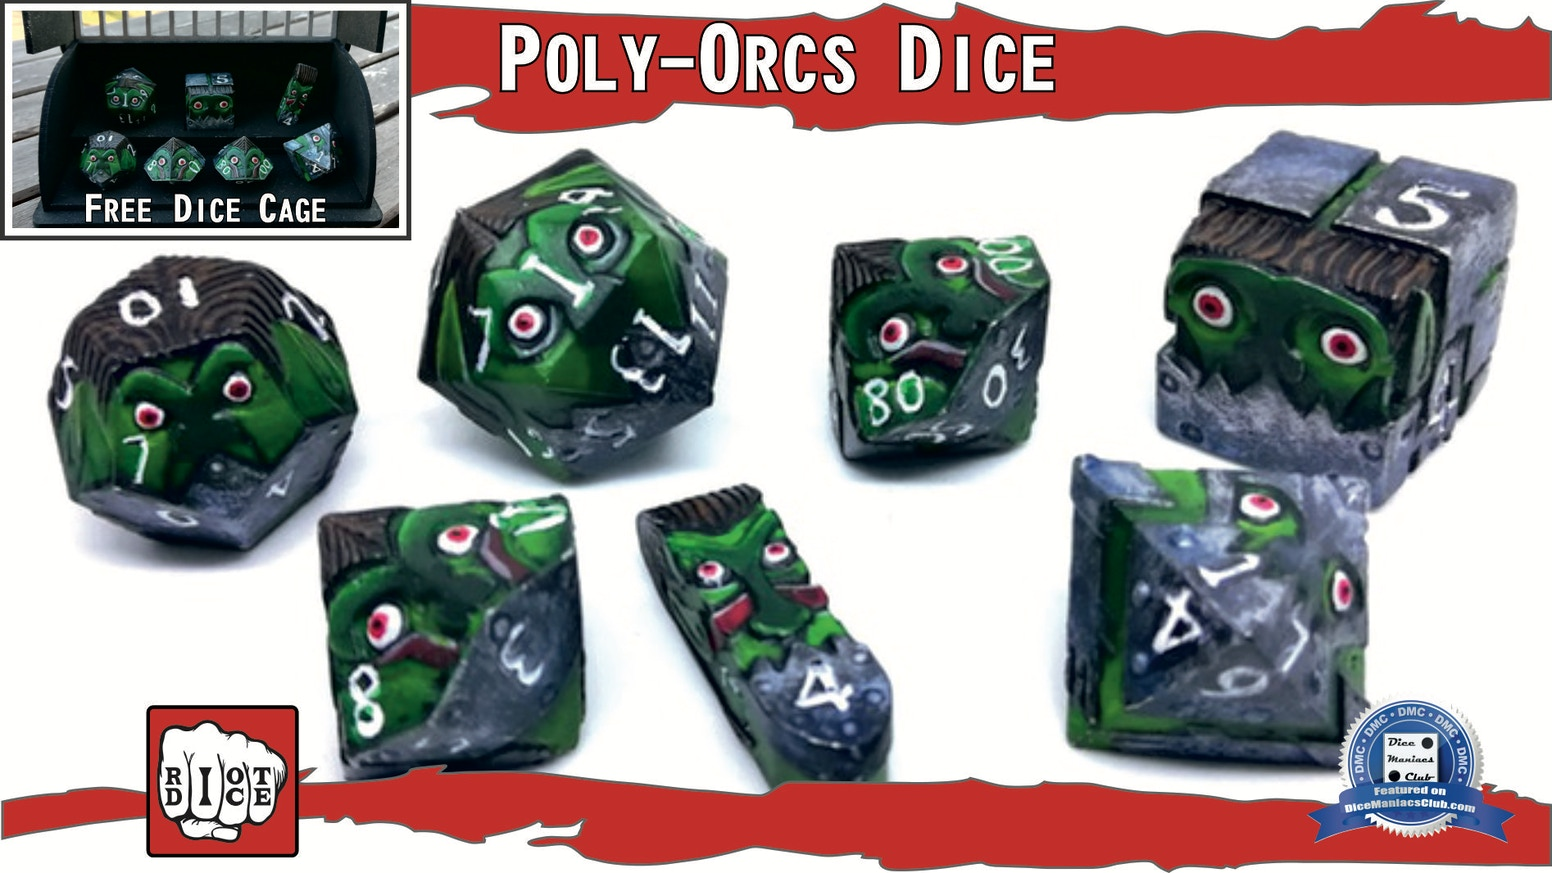 The first ever scupted set of metal polyhedric dice also usable as character miniature.